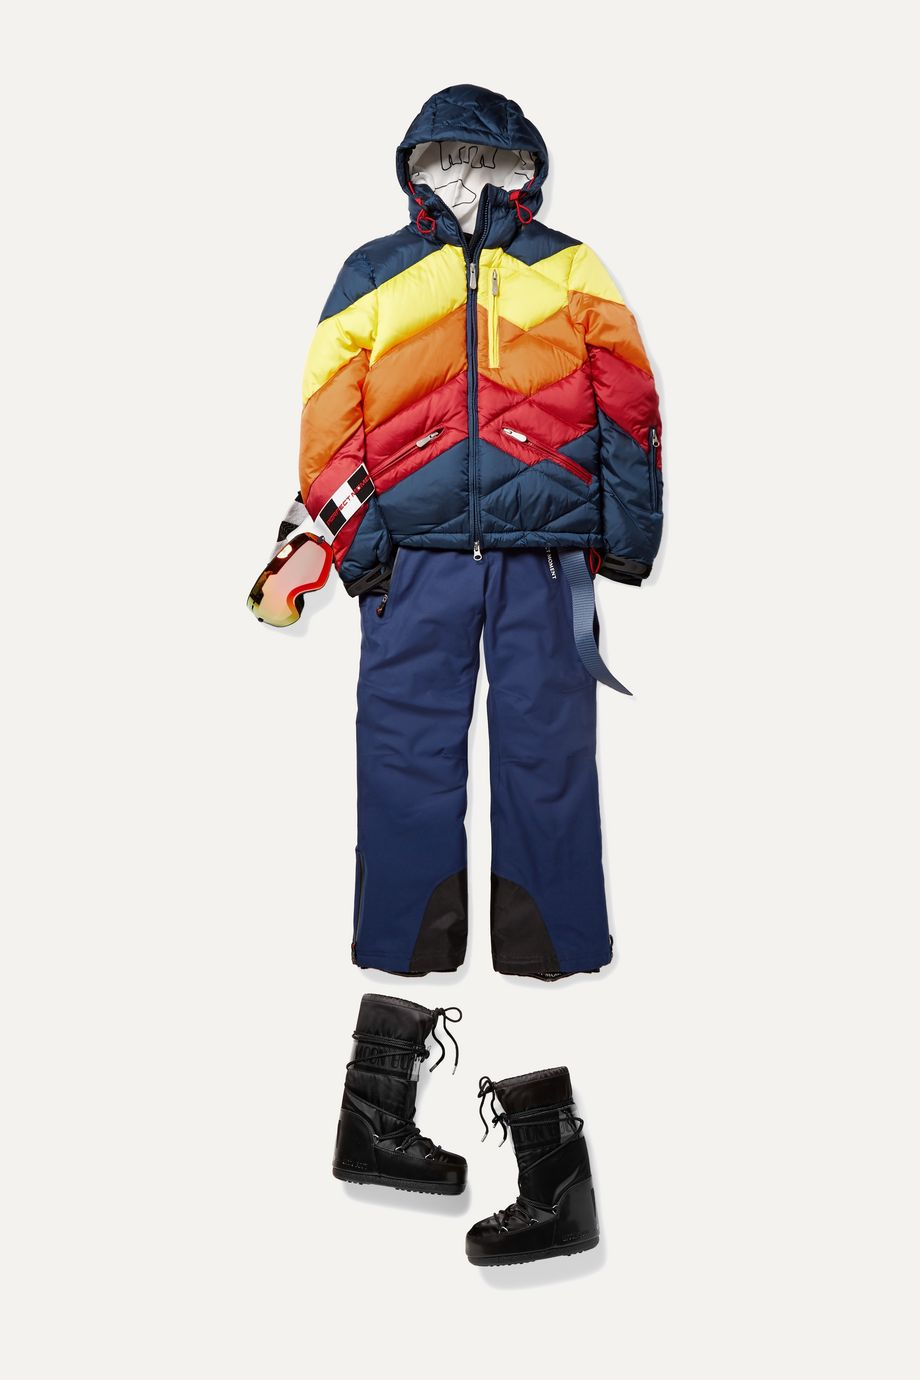 Perfect Moment Kids Ages 6 - 12 Superday II striped down ski jacket